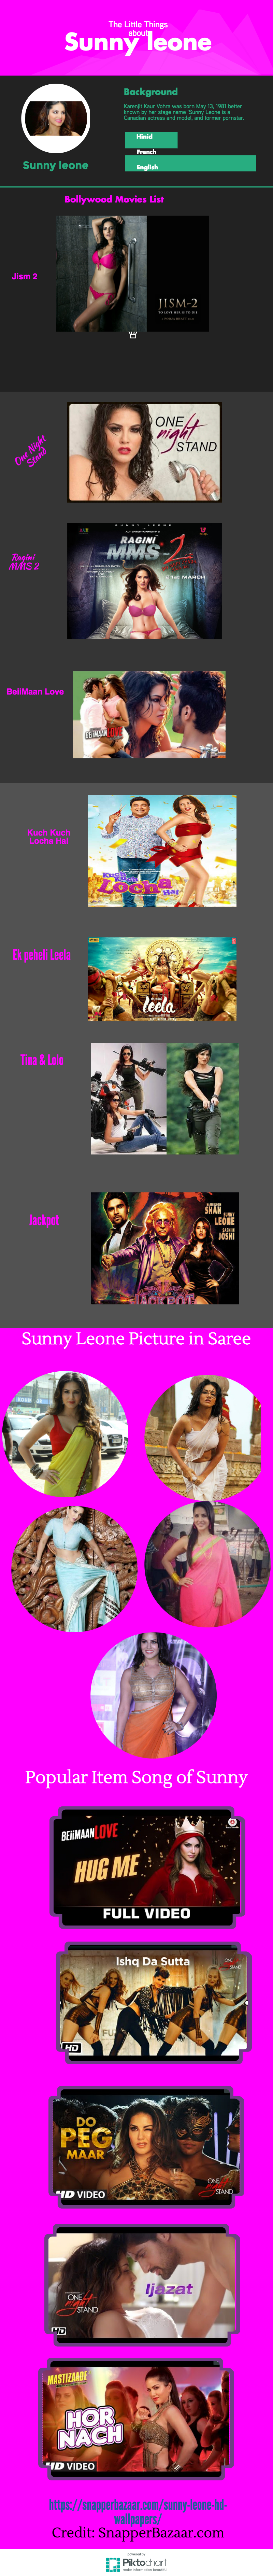 sunny-leone-first-infographic-by-snapperbazaar-com